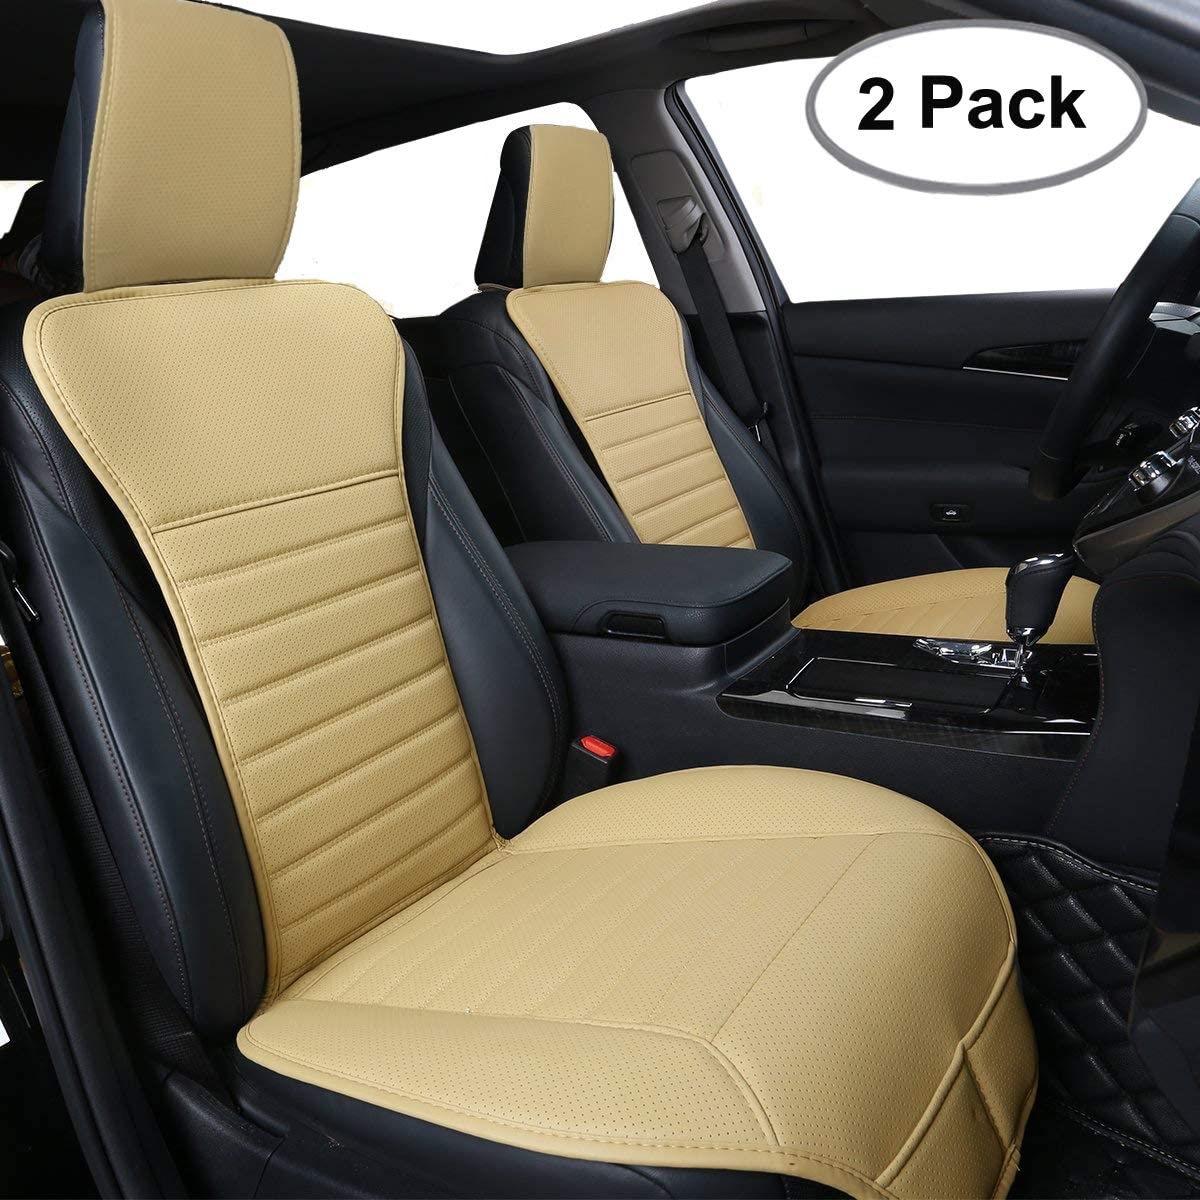 Big Ant Car Seat Cushion, Sleek Design Full Size 2 PCS Breathable Universal Four Seasons Interior Front or Back Seat Covers for Auto Supplies Office Chair with PU Leather(Beige)